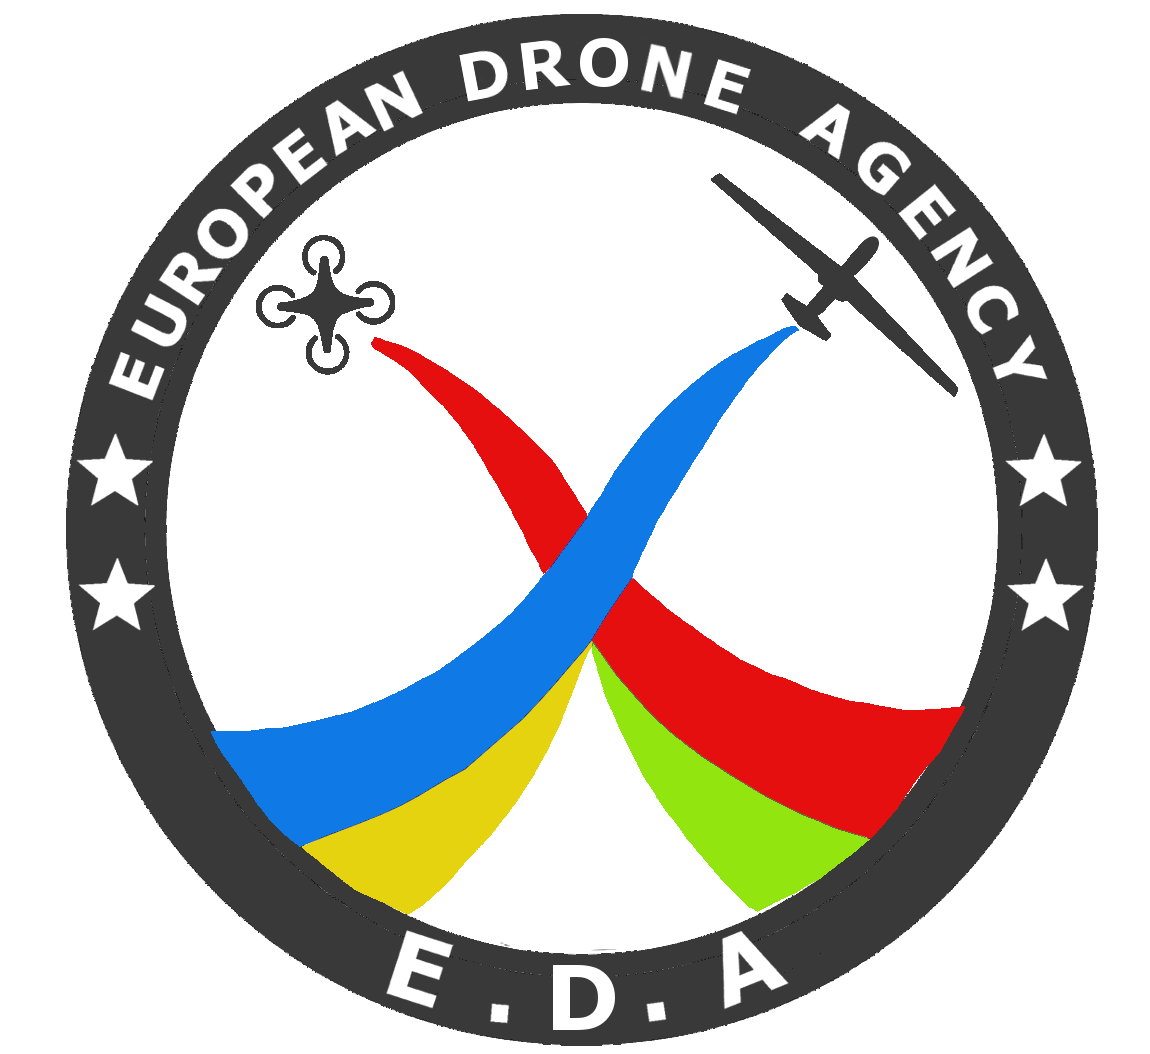 Association - EUROPEAN DRONE AGENCY